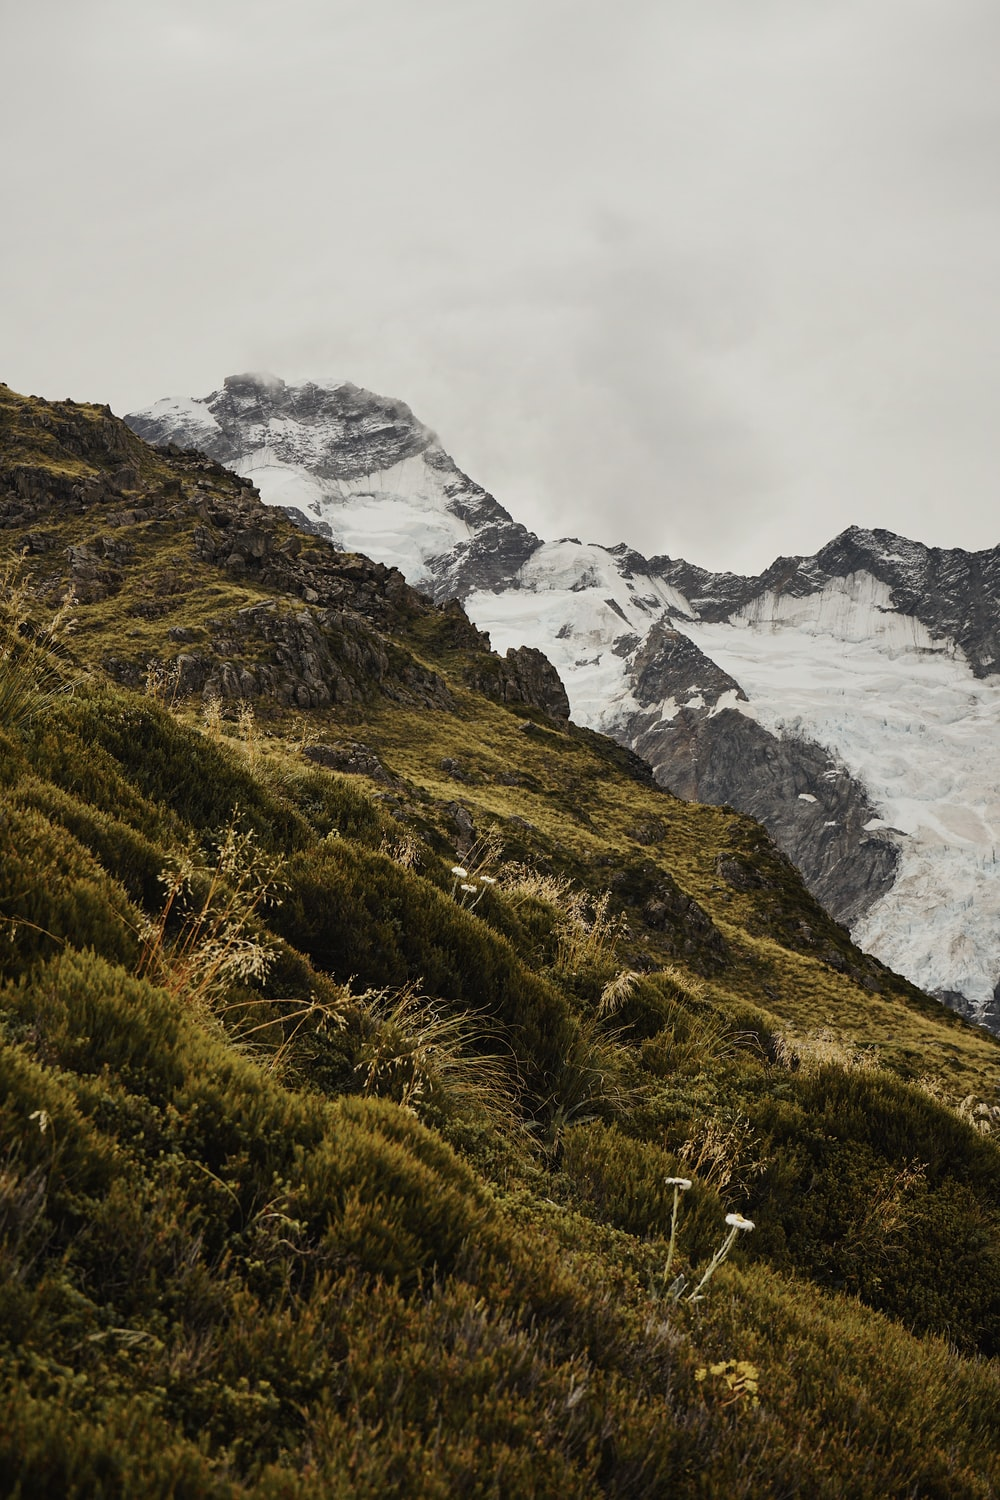 green mountains and gray mountain covered with snow